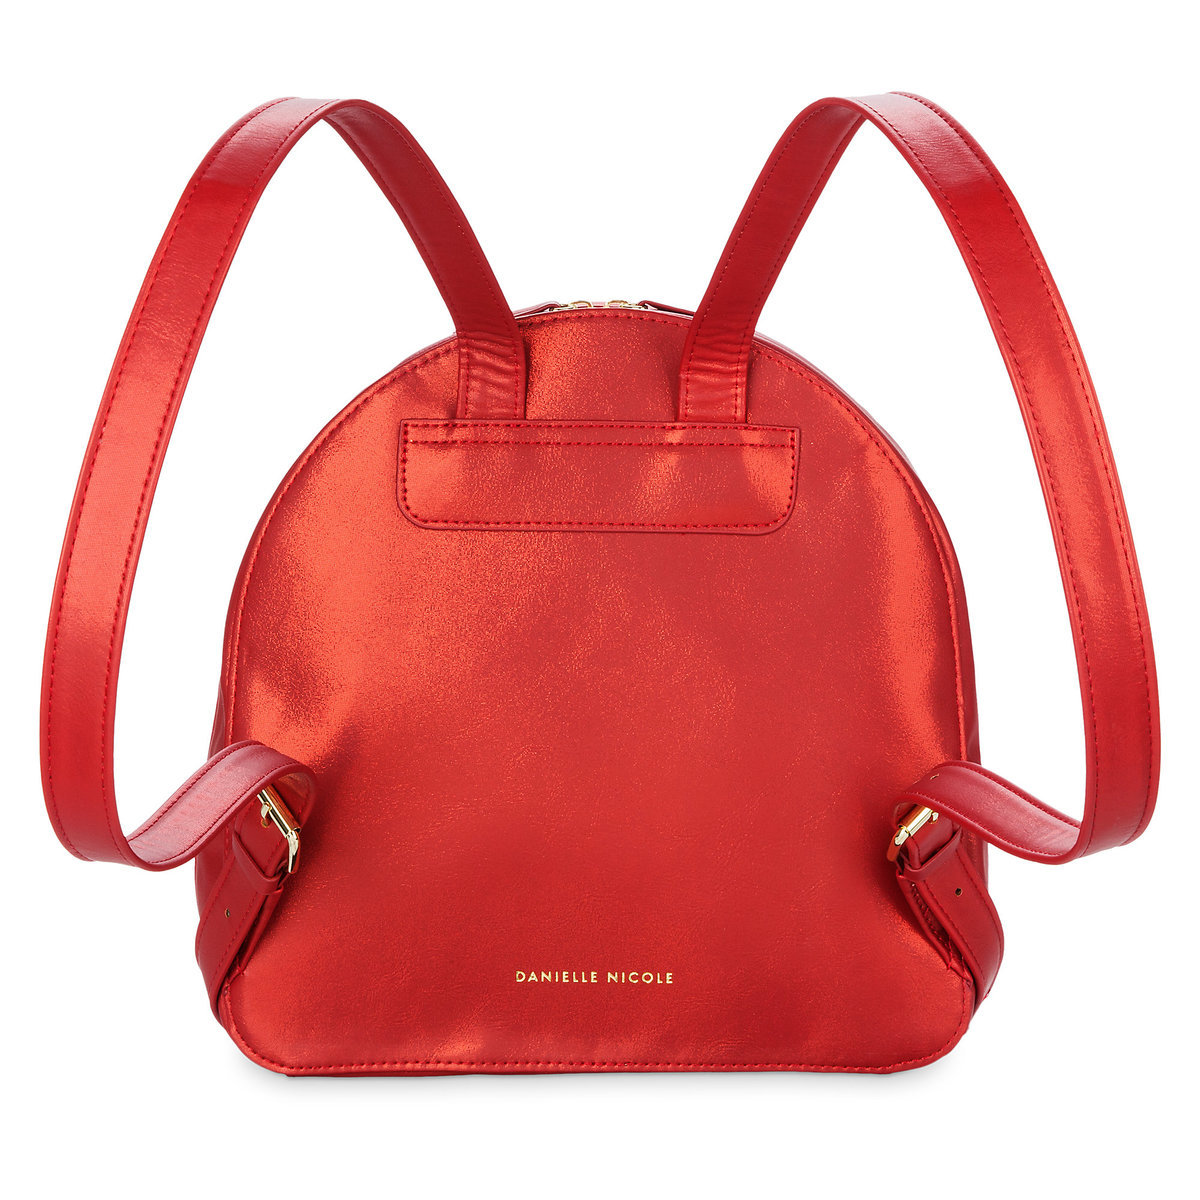 e4d38094373 Product Image of Mulan Fashion Backpack by Danielle Nicole   2